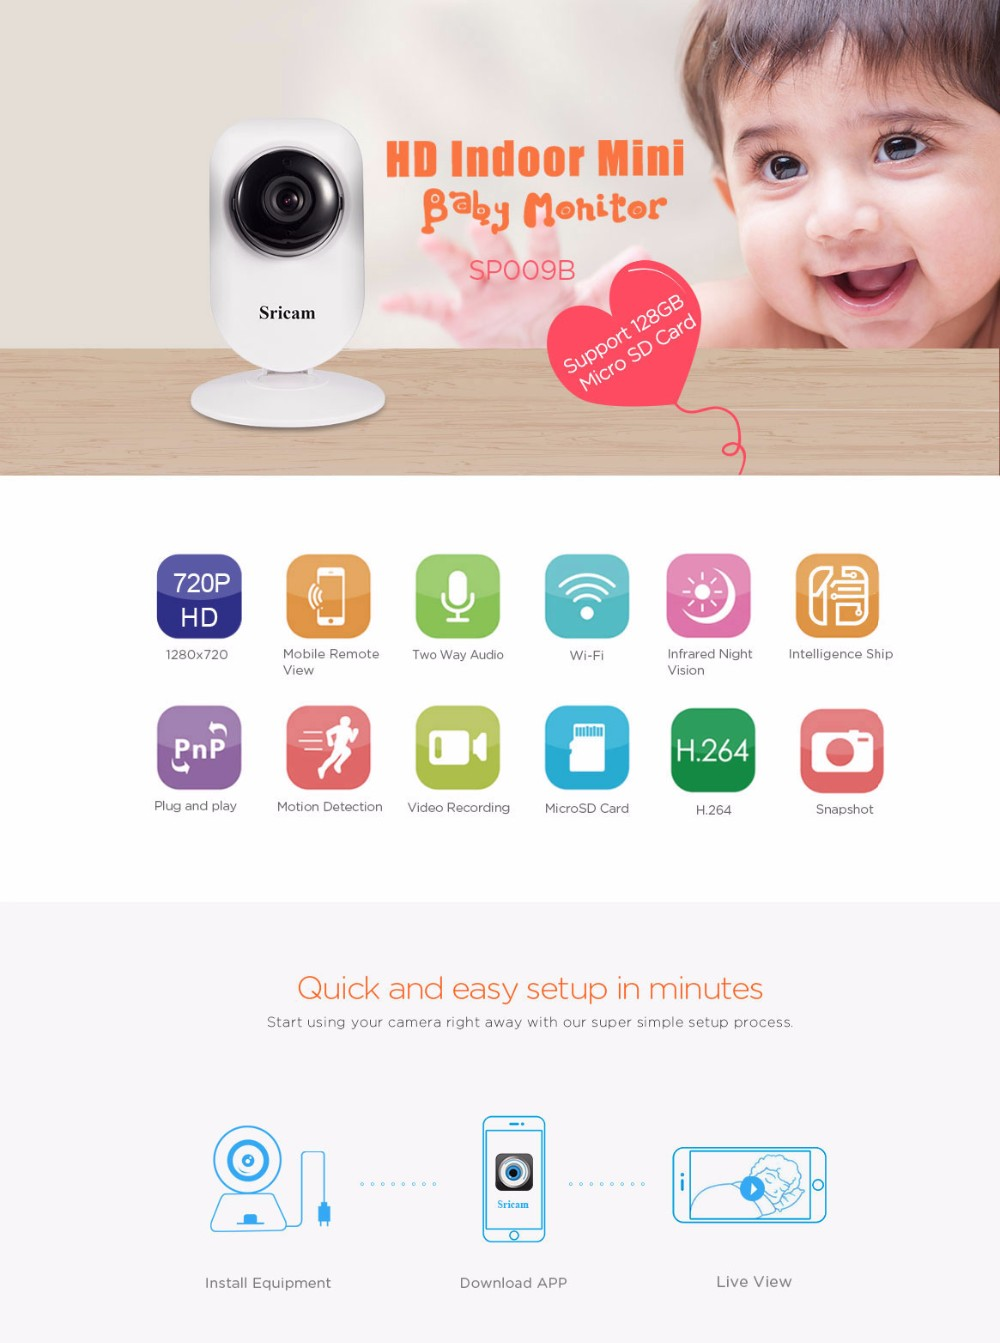 Sricam SP009B OEM/ODM hd night vision wifi baby ip camera 720p wireless wifi indoor cctv p2p camera